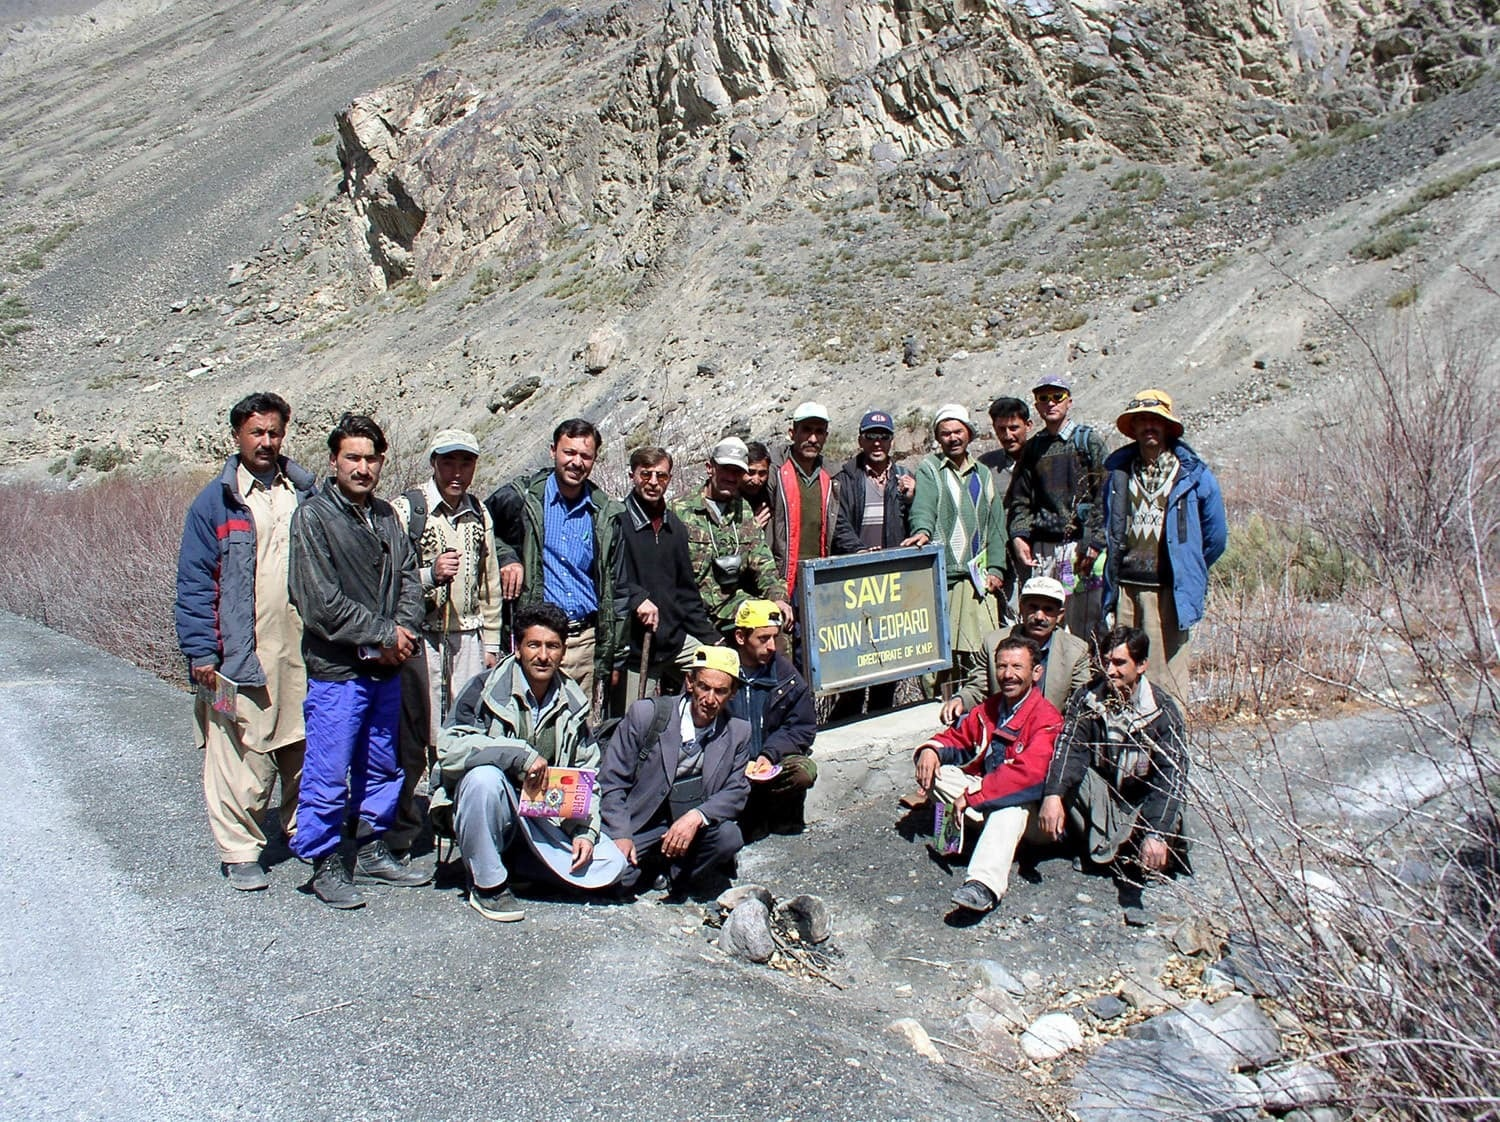 Local villagers with members of the BWCDO during a wildlife survey in the area. -All photos by Ghulam Mohammad, the General Manager of the BWCDO